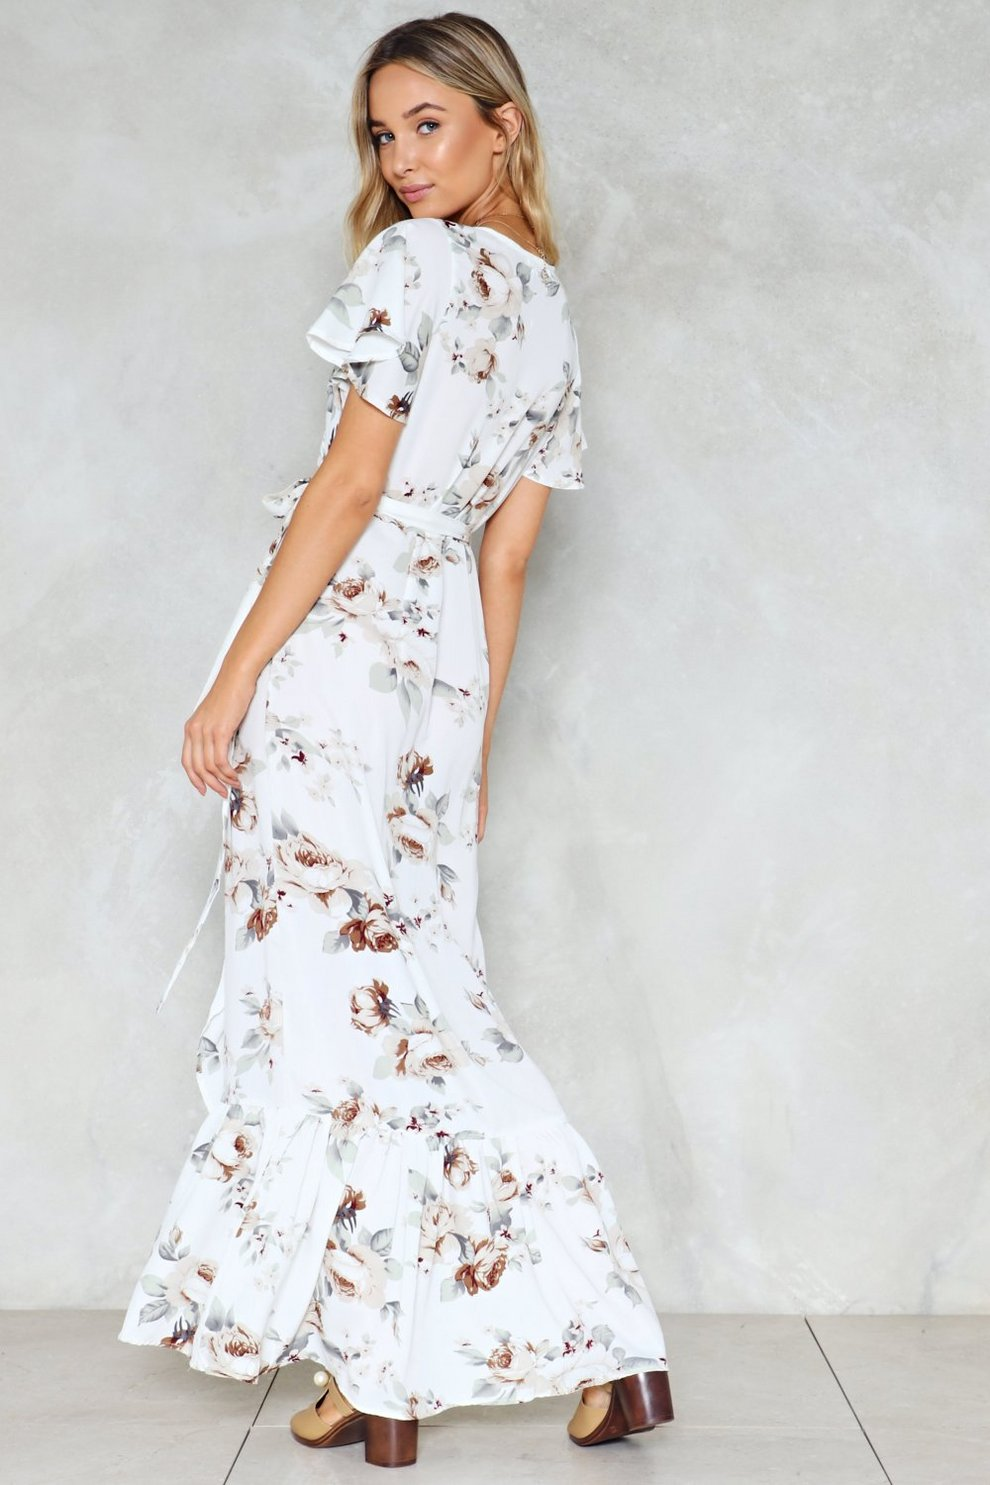 5edb52f206f6d Easy On the Ties Floral Dress   Shop Clothes at Nasty Gal!